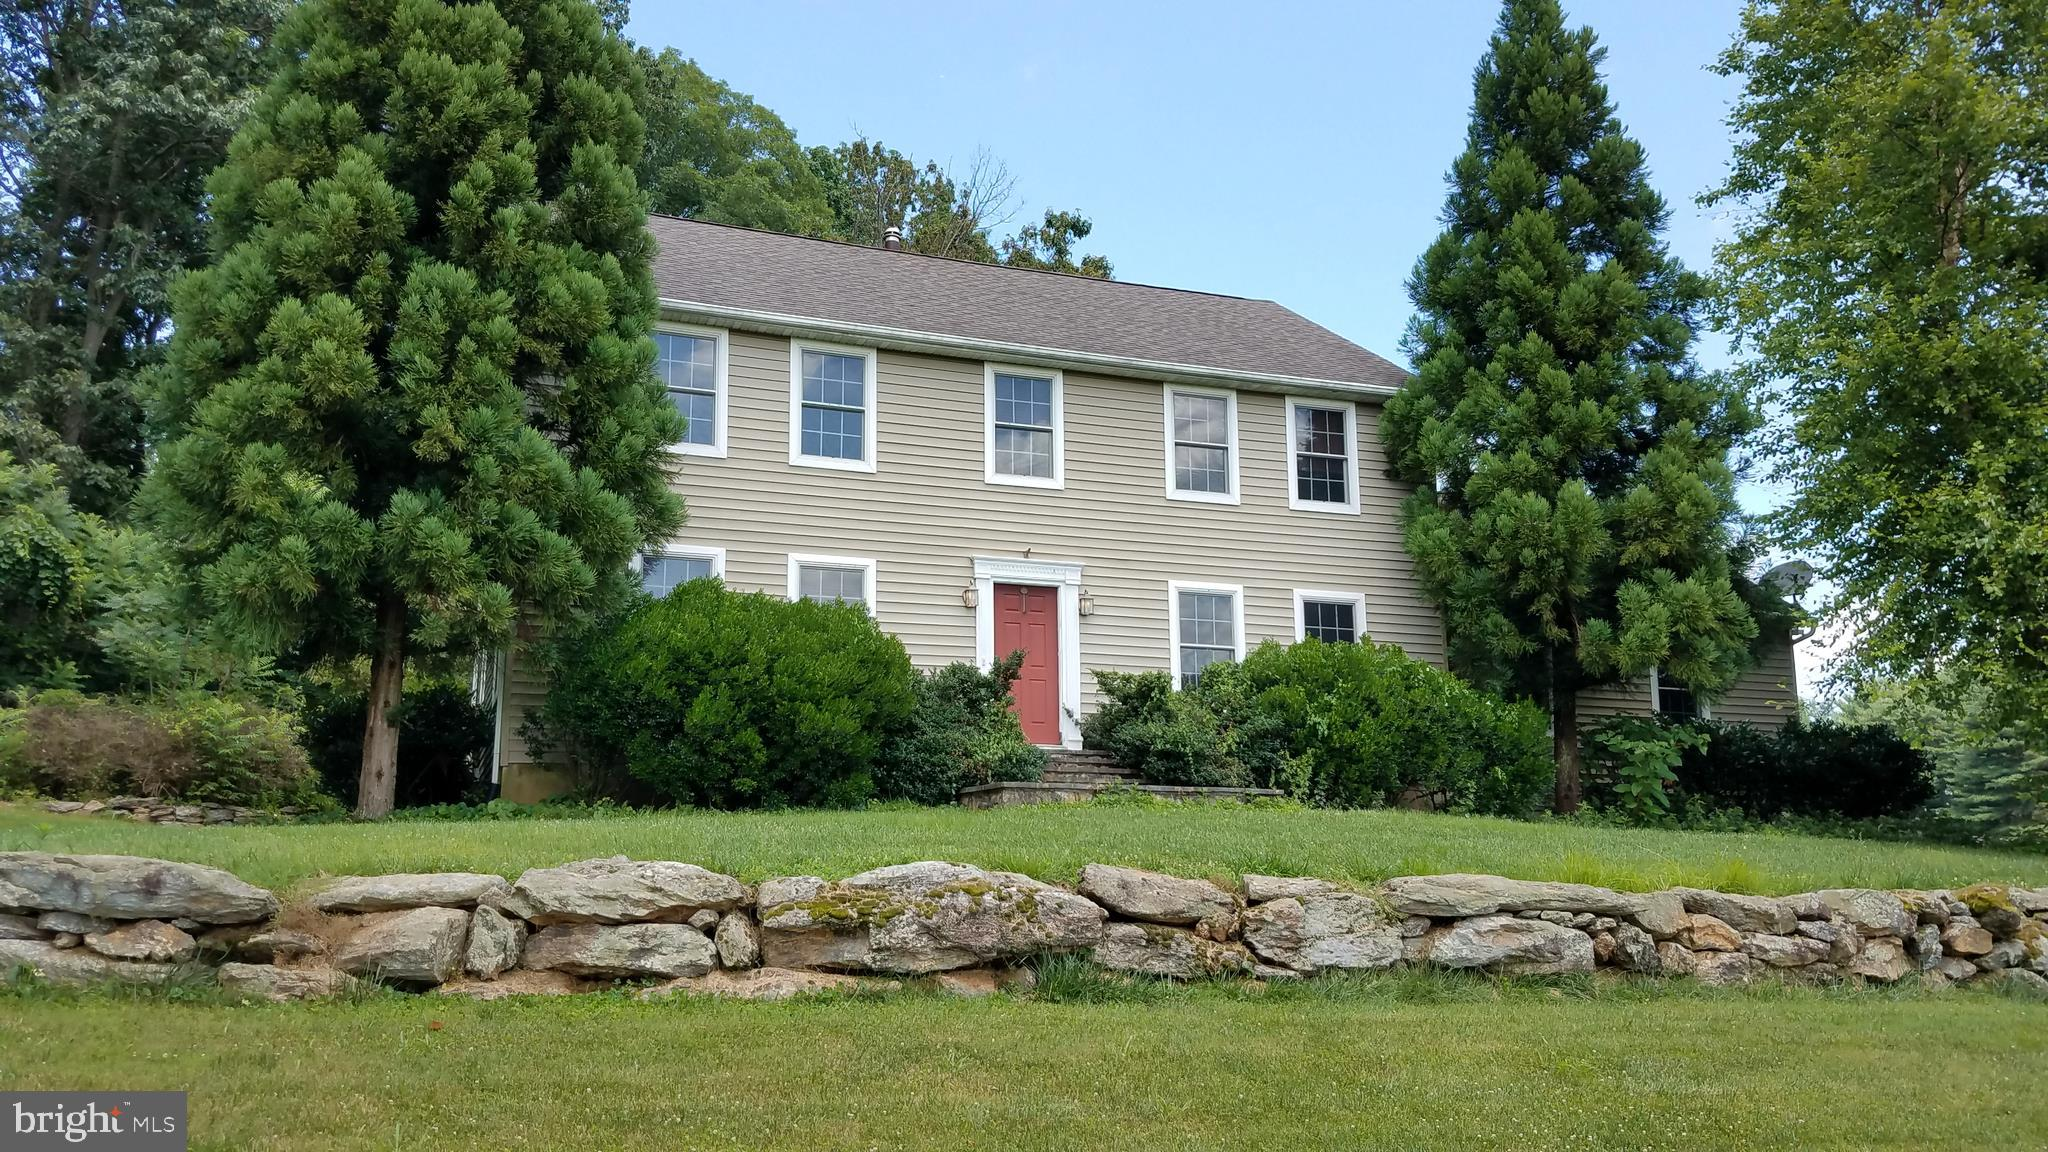 2980 HOFFMAN MILL ROAD, HAMPSTEAD, MD 21074